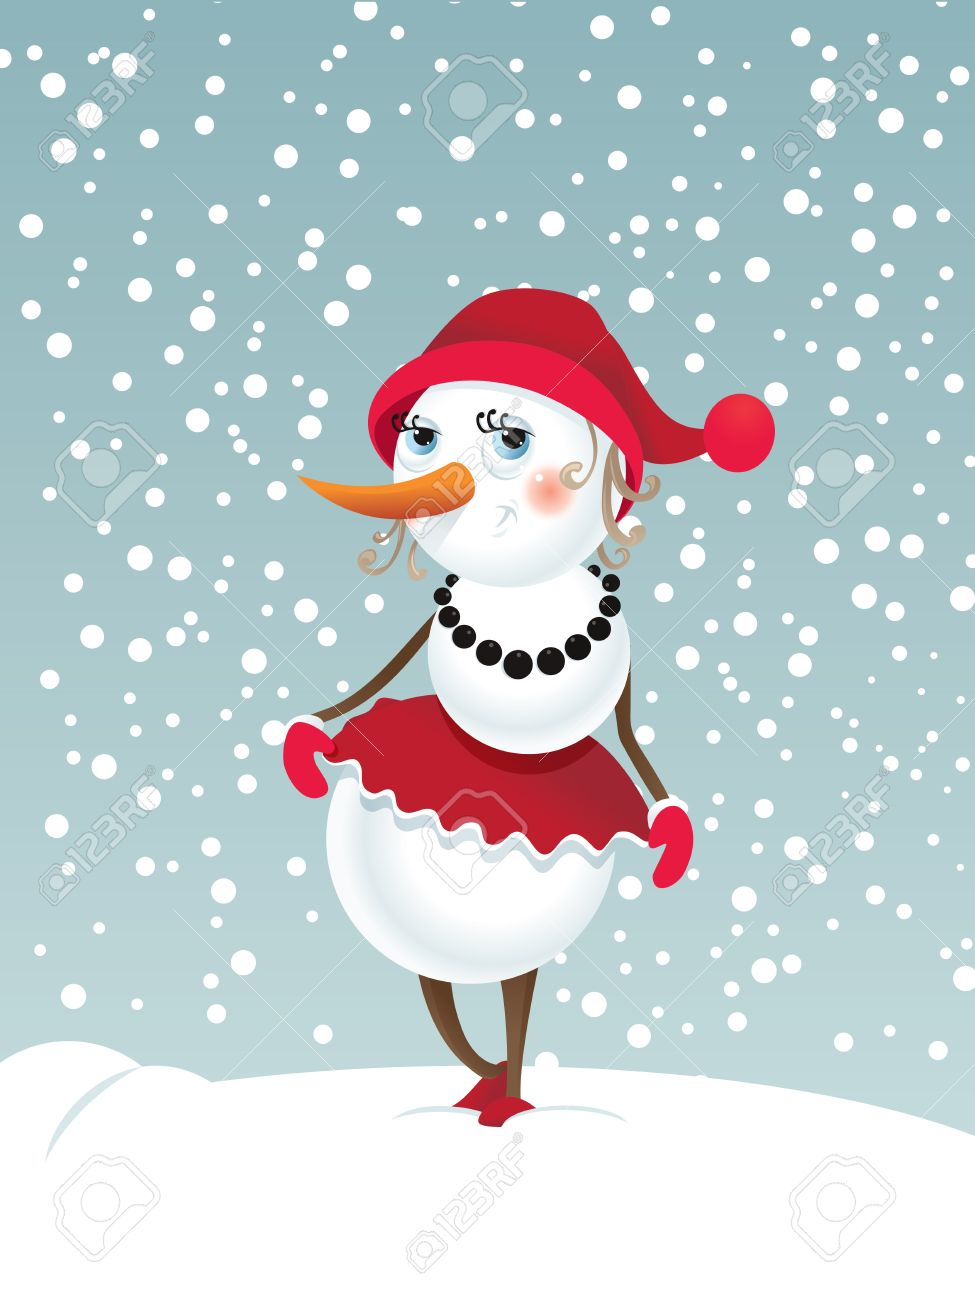 Christmas background with snowman-girl Contains transparent objects used for shadows Stock Vector - 17123826